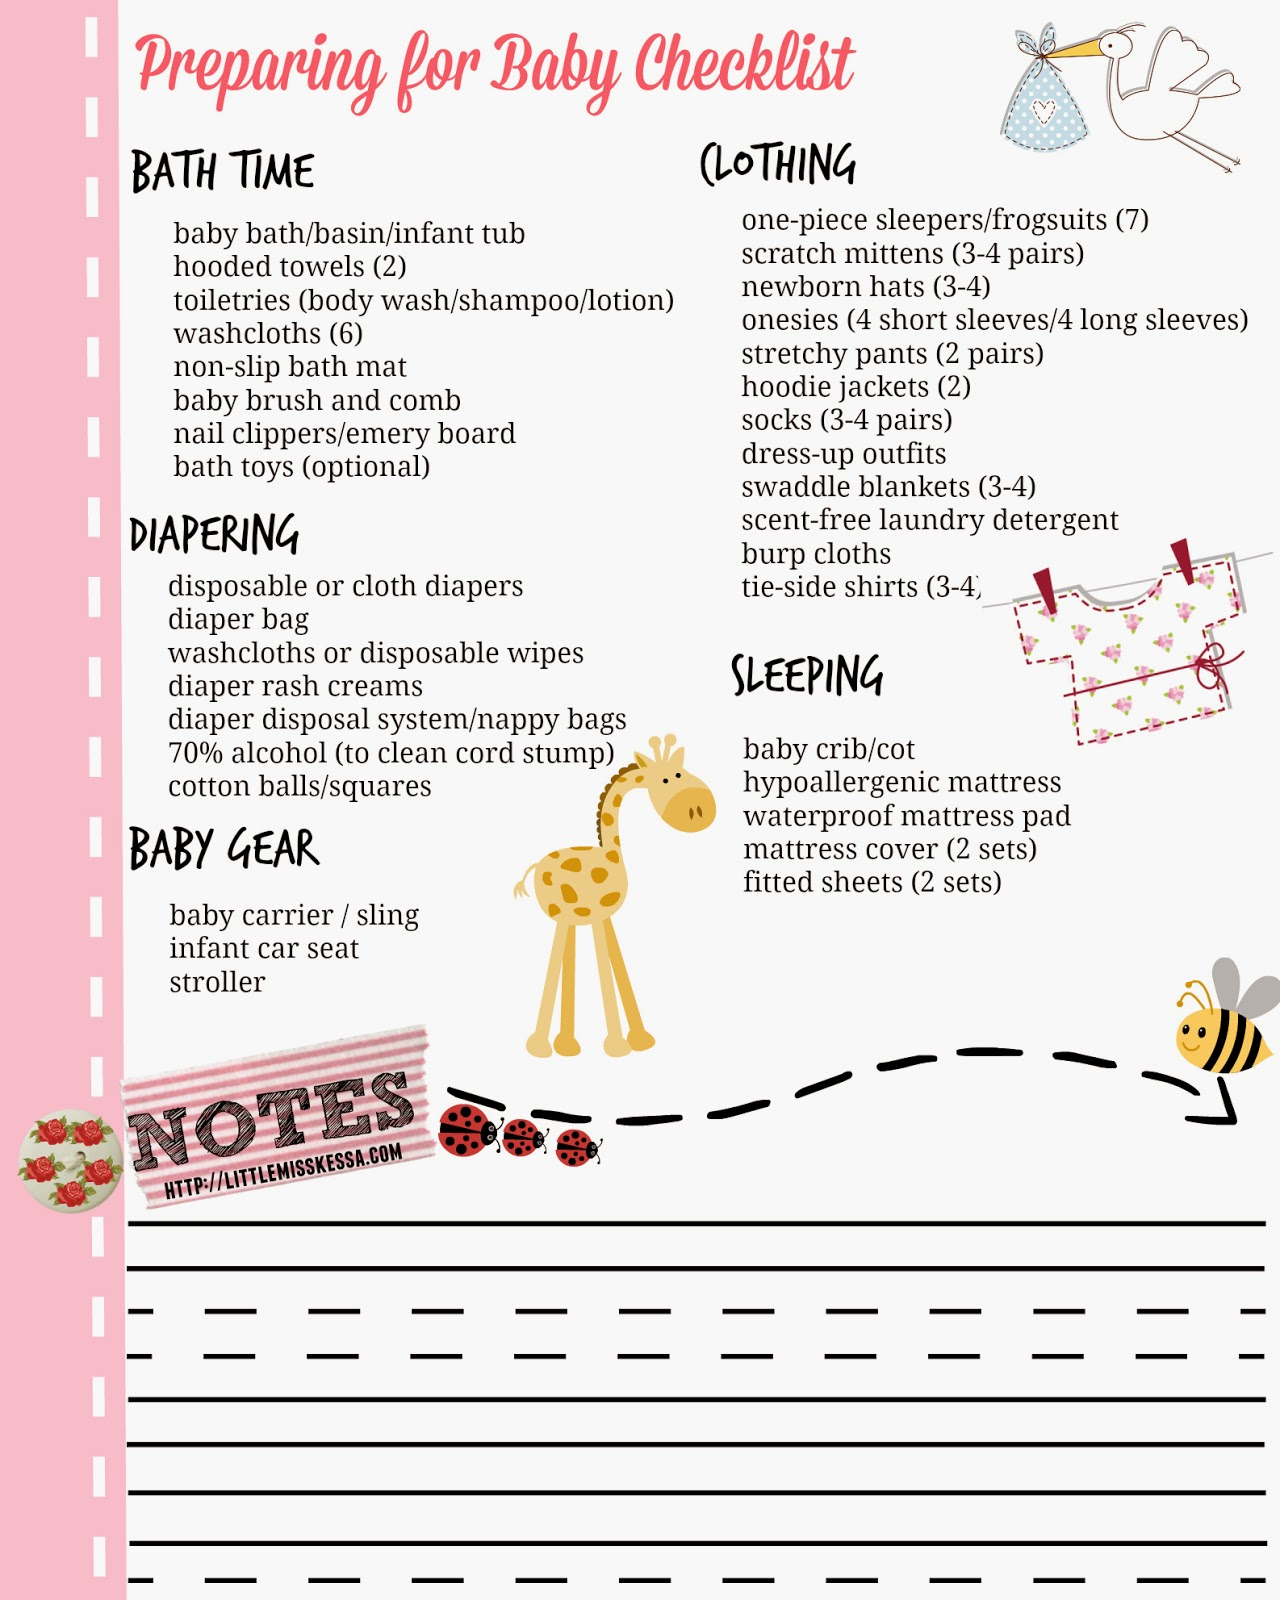 PREPARING FOR BABY CHECKLIST - A Day In The Life Of This Miss